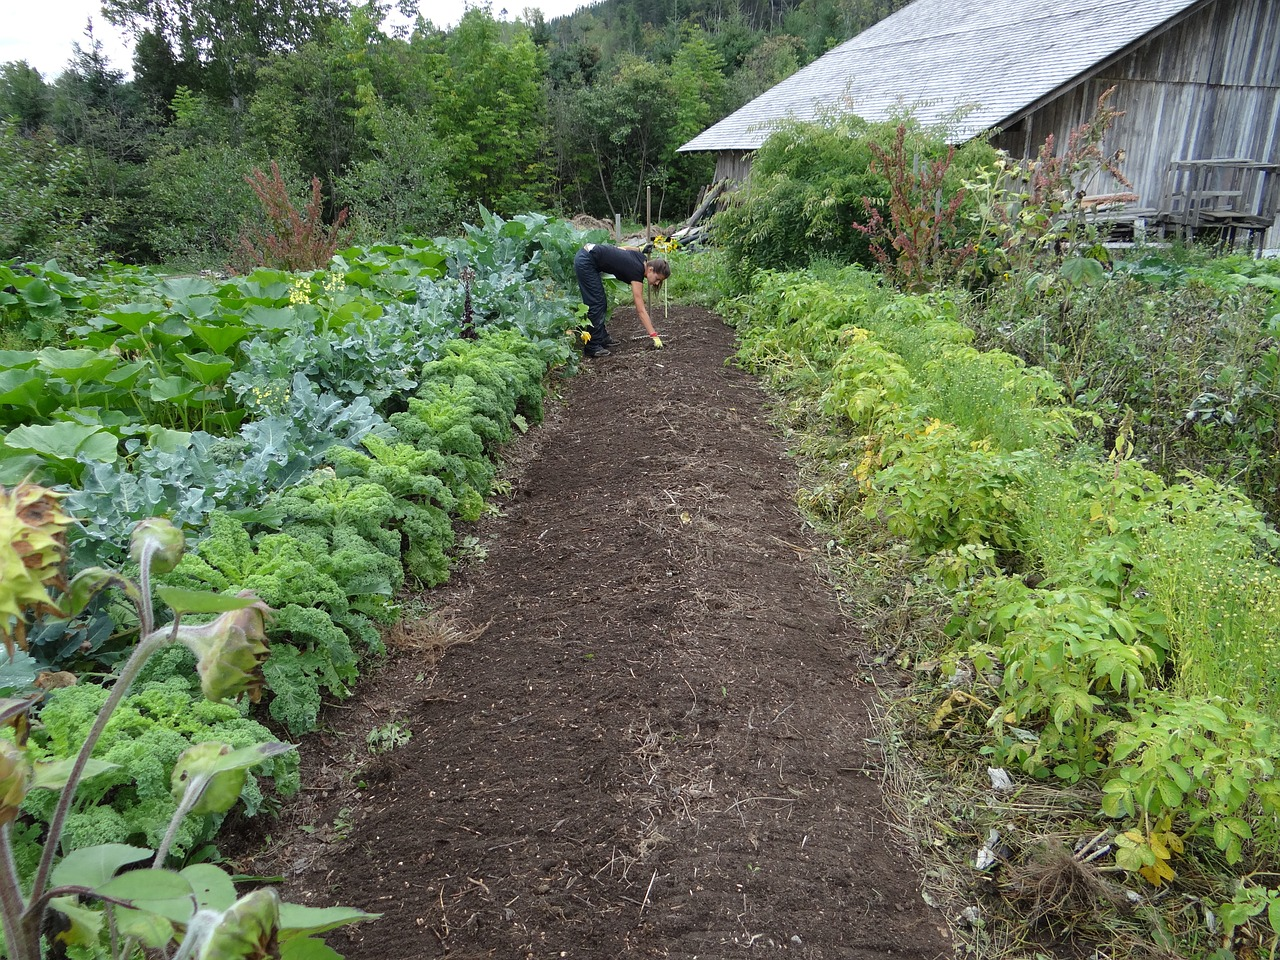 Lots of perennial vegetables in a farm